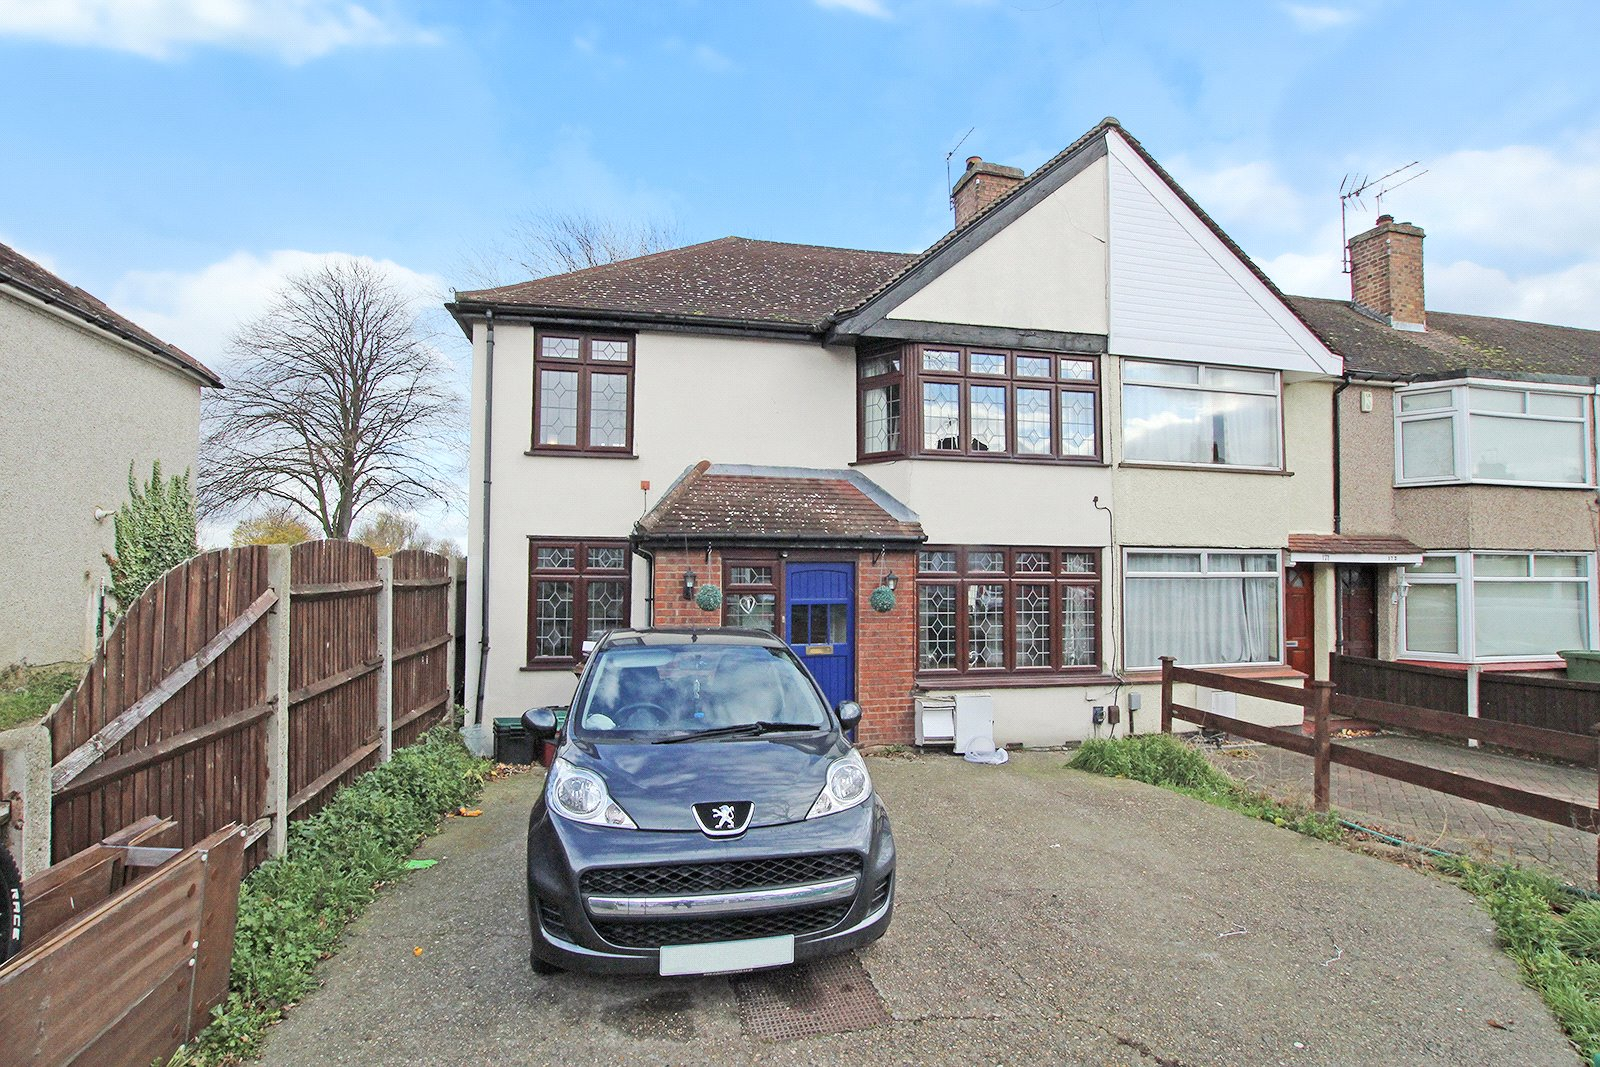 Ramillies Road, Blackfen, Kent, DA15